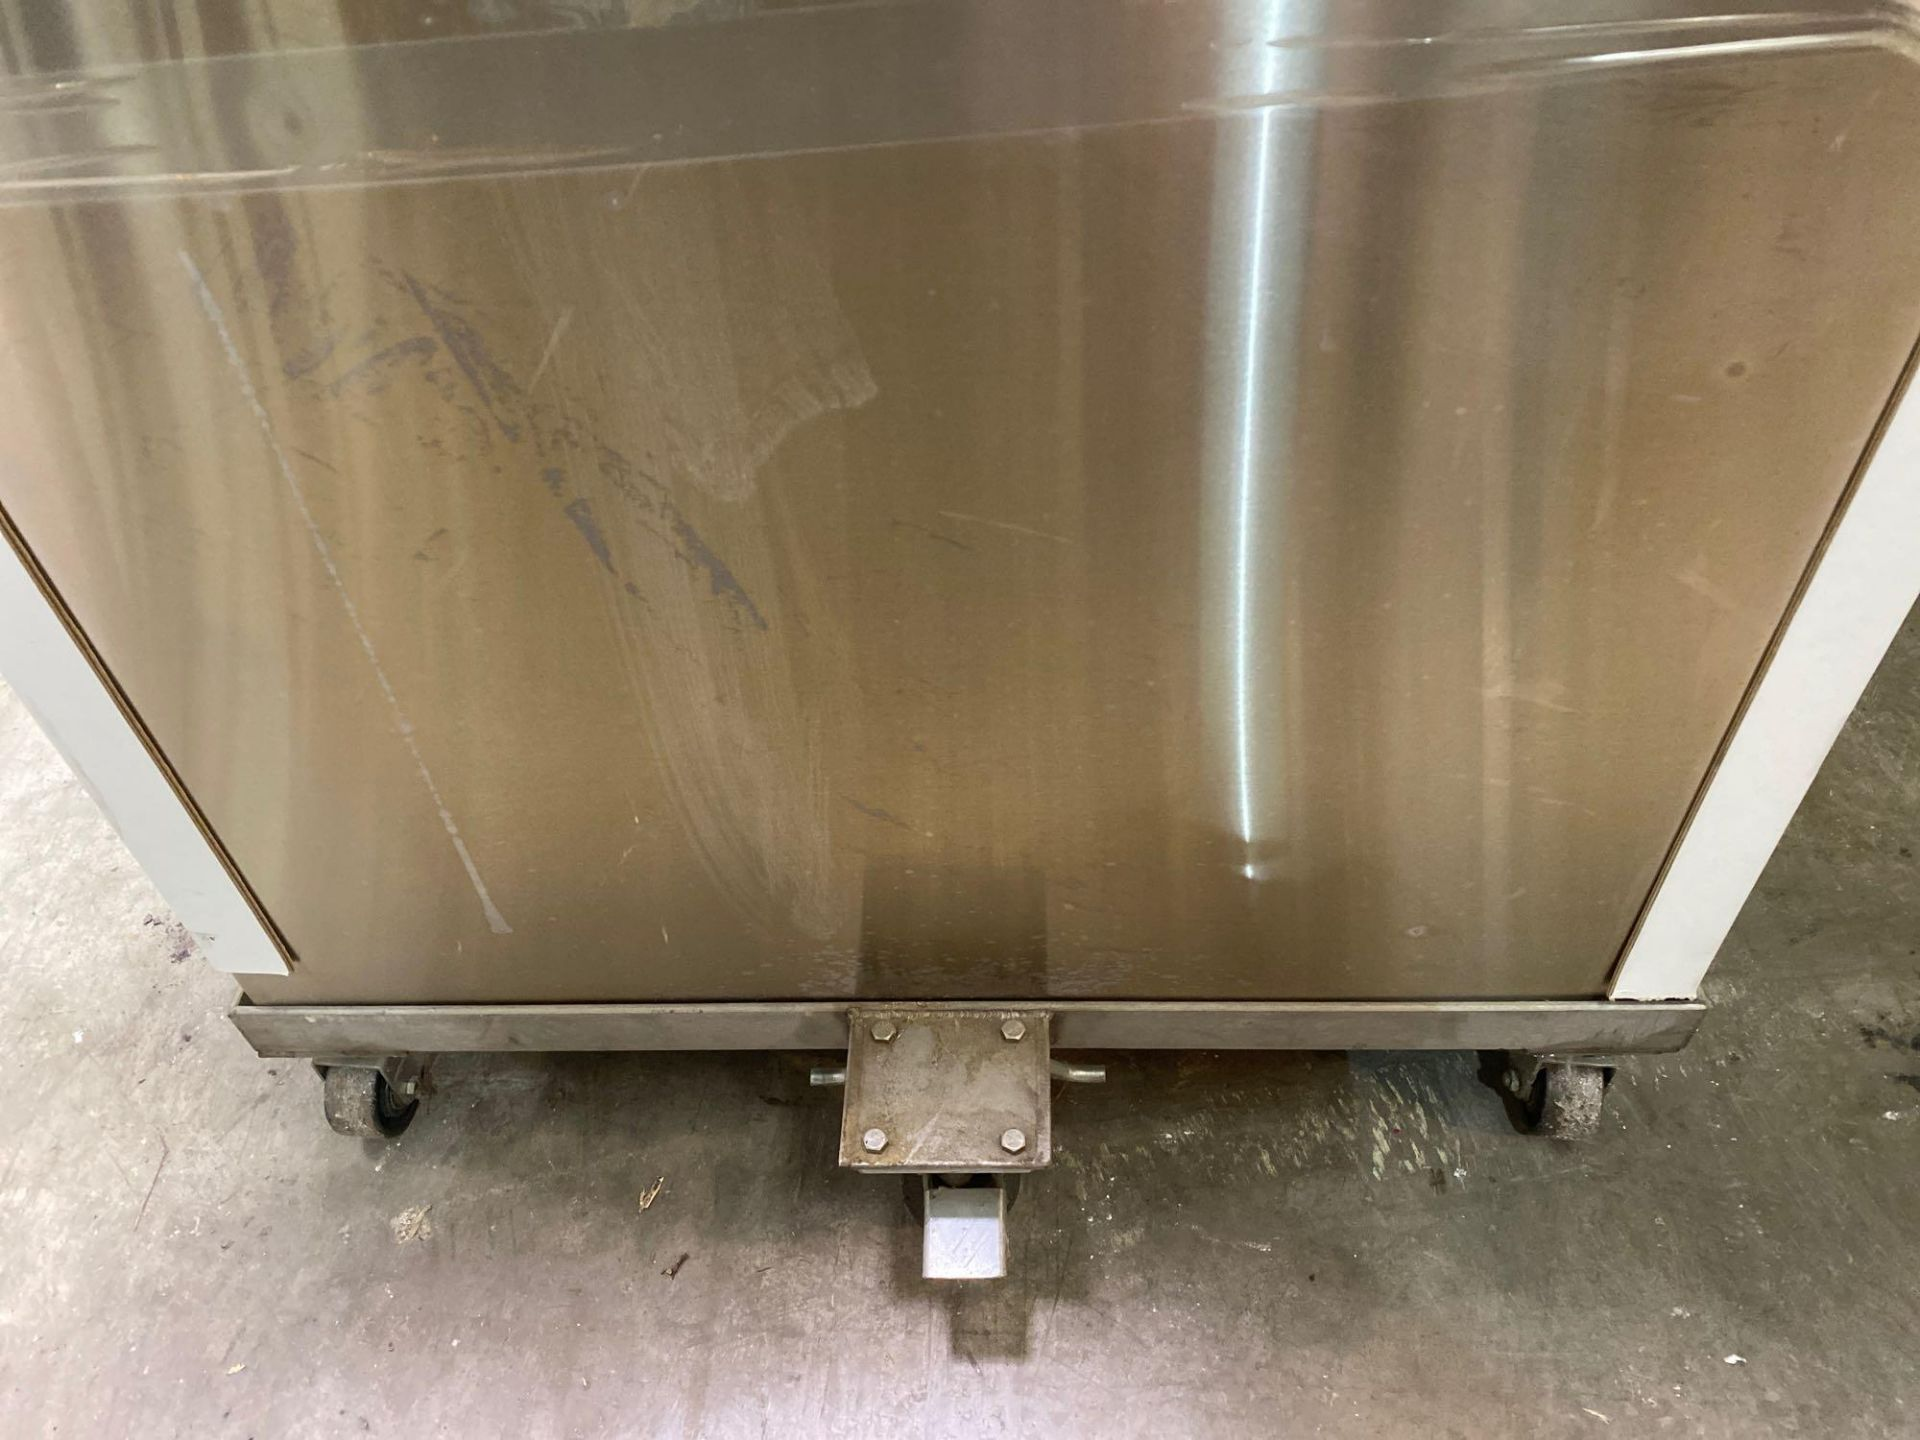 Mobile Stainless Steel Cabinet with Sifter Sieves - Assorted Sizes - Image 12 of 13